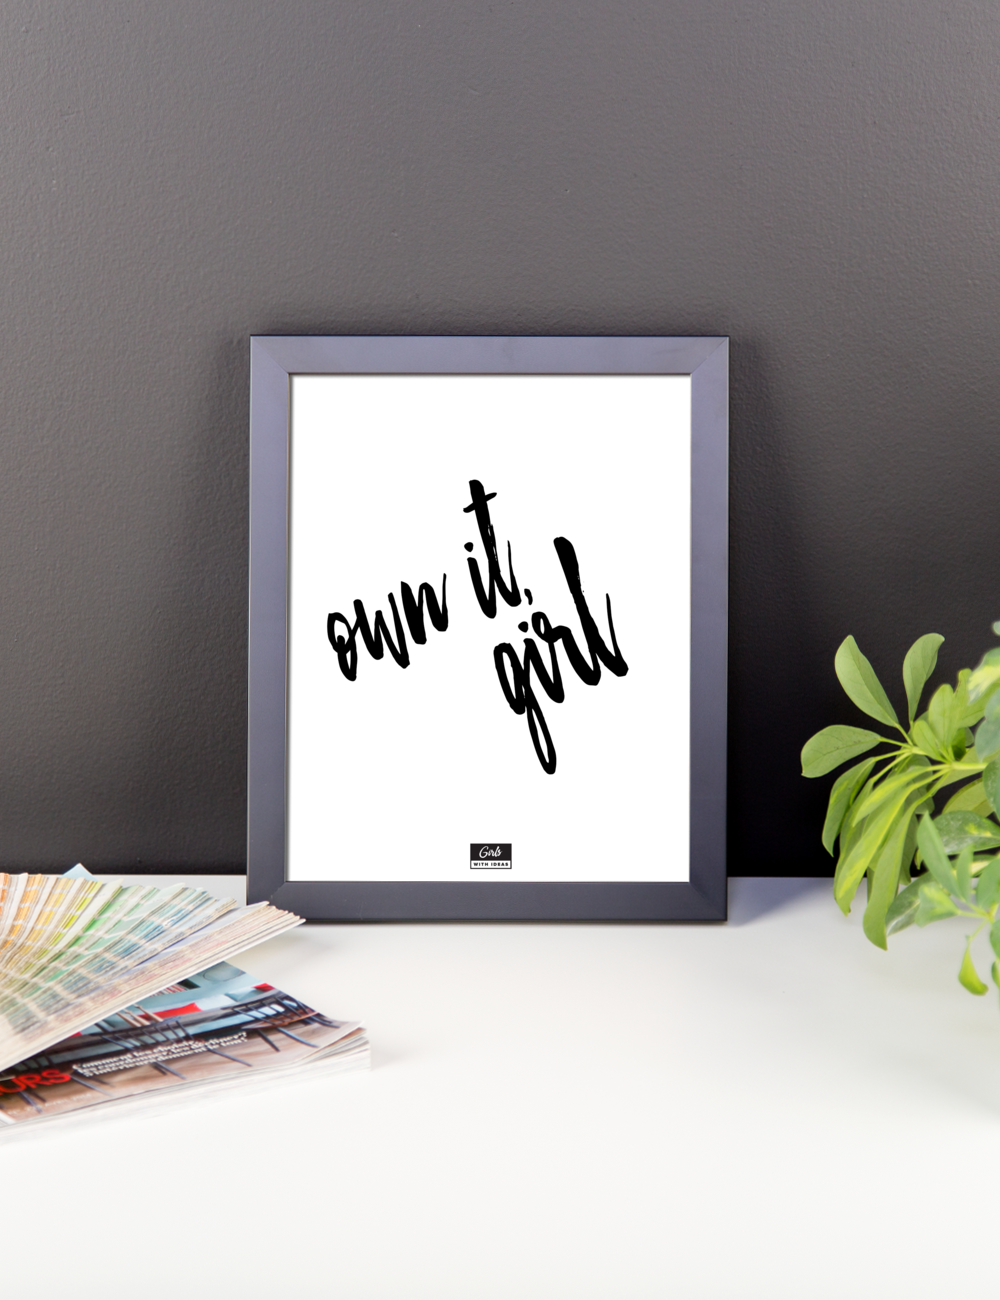 Get this free 'Own it, girl' print from Girls With Ideas.